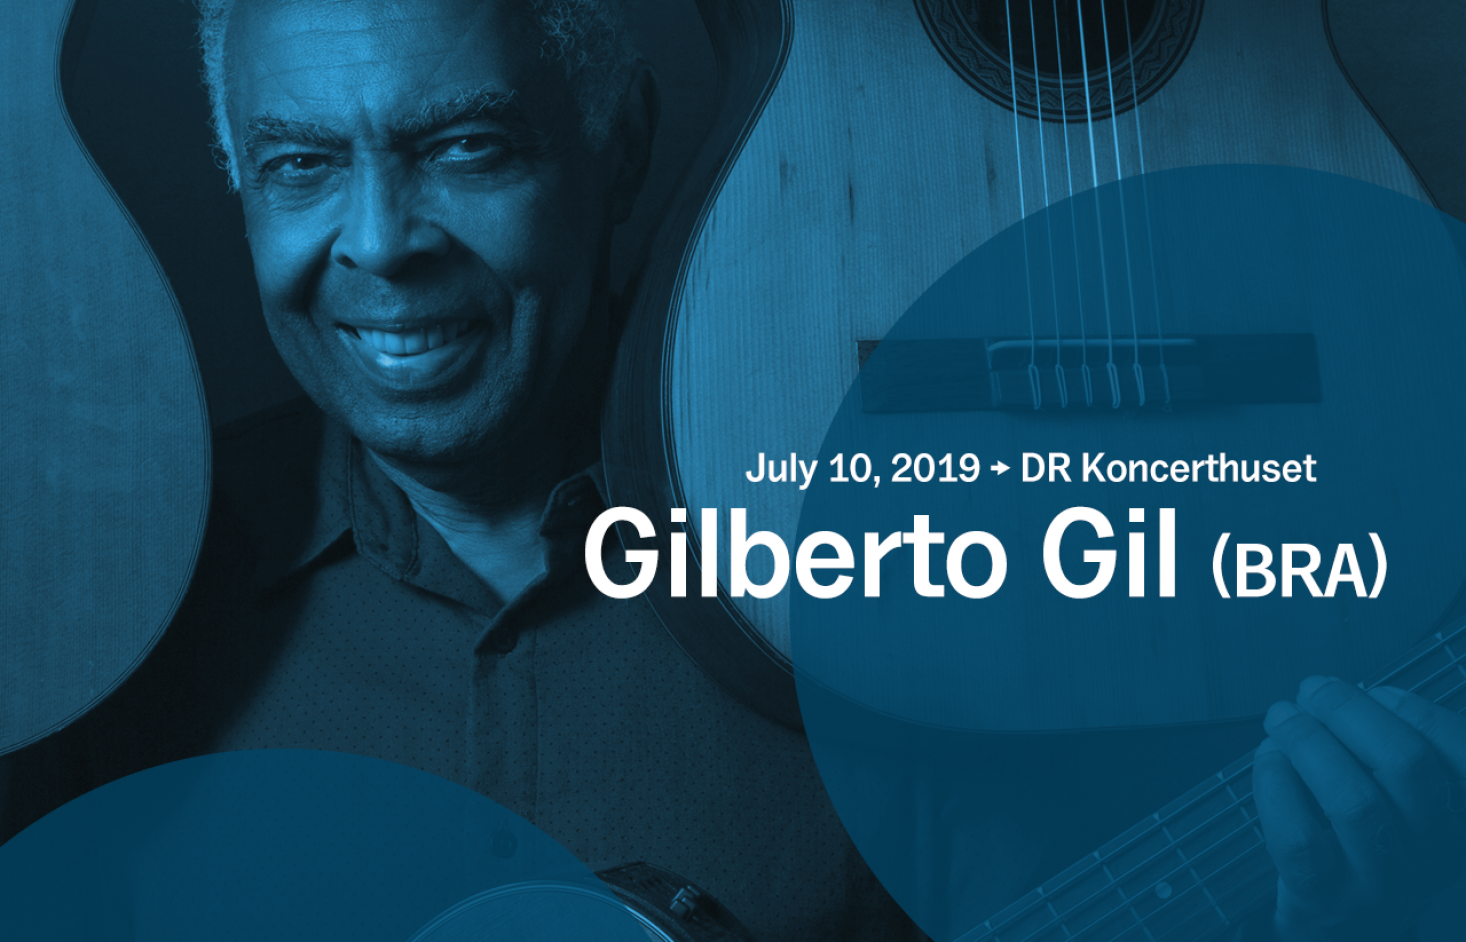 Gilberto Gil joins Copenhagen Jazz Festival with special guest Roberta Sá – tickets from Monday March 25